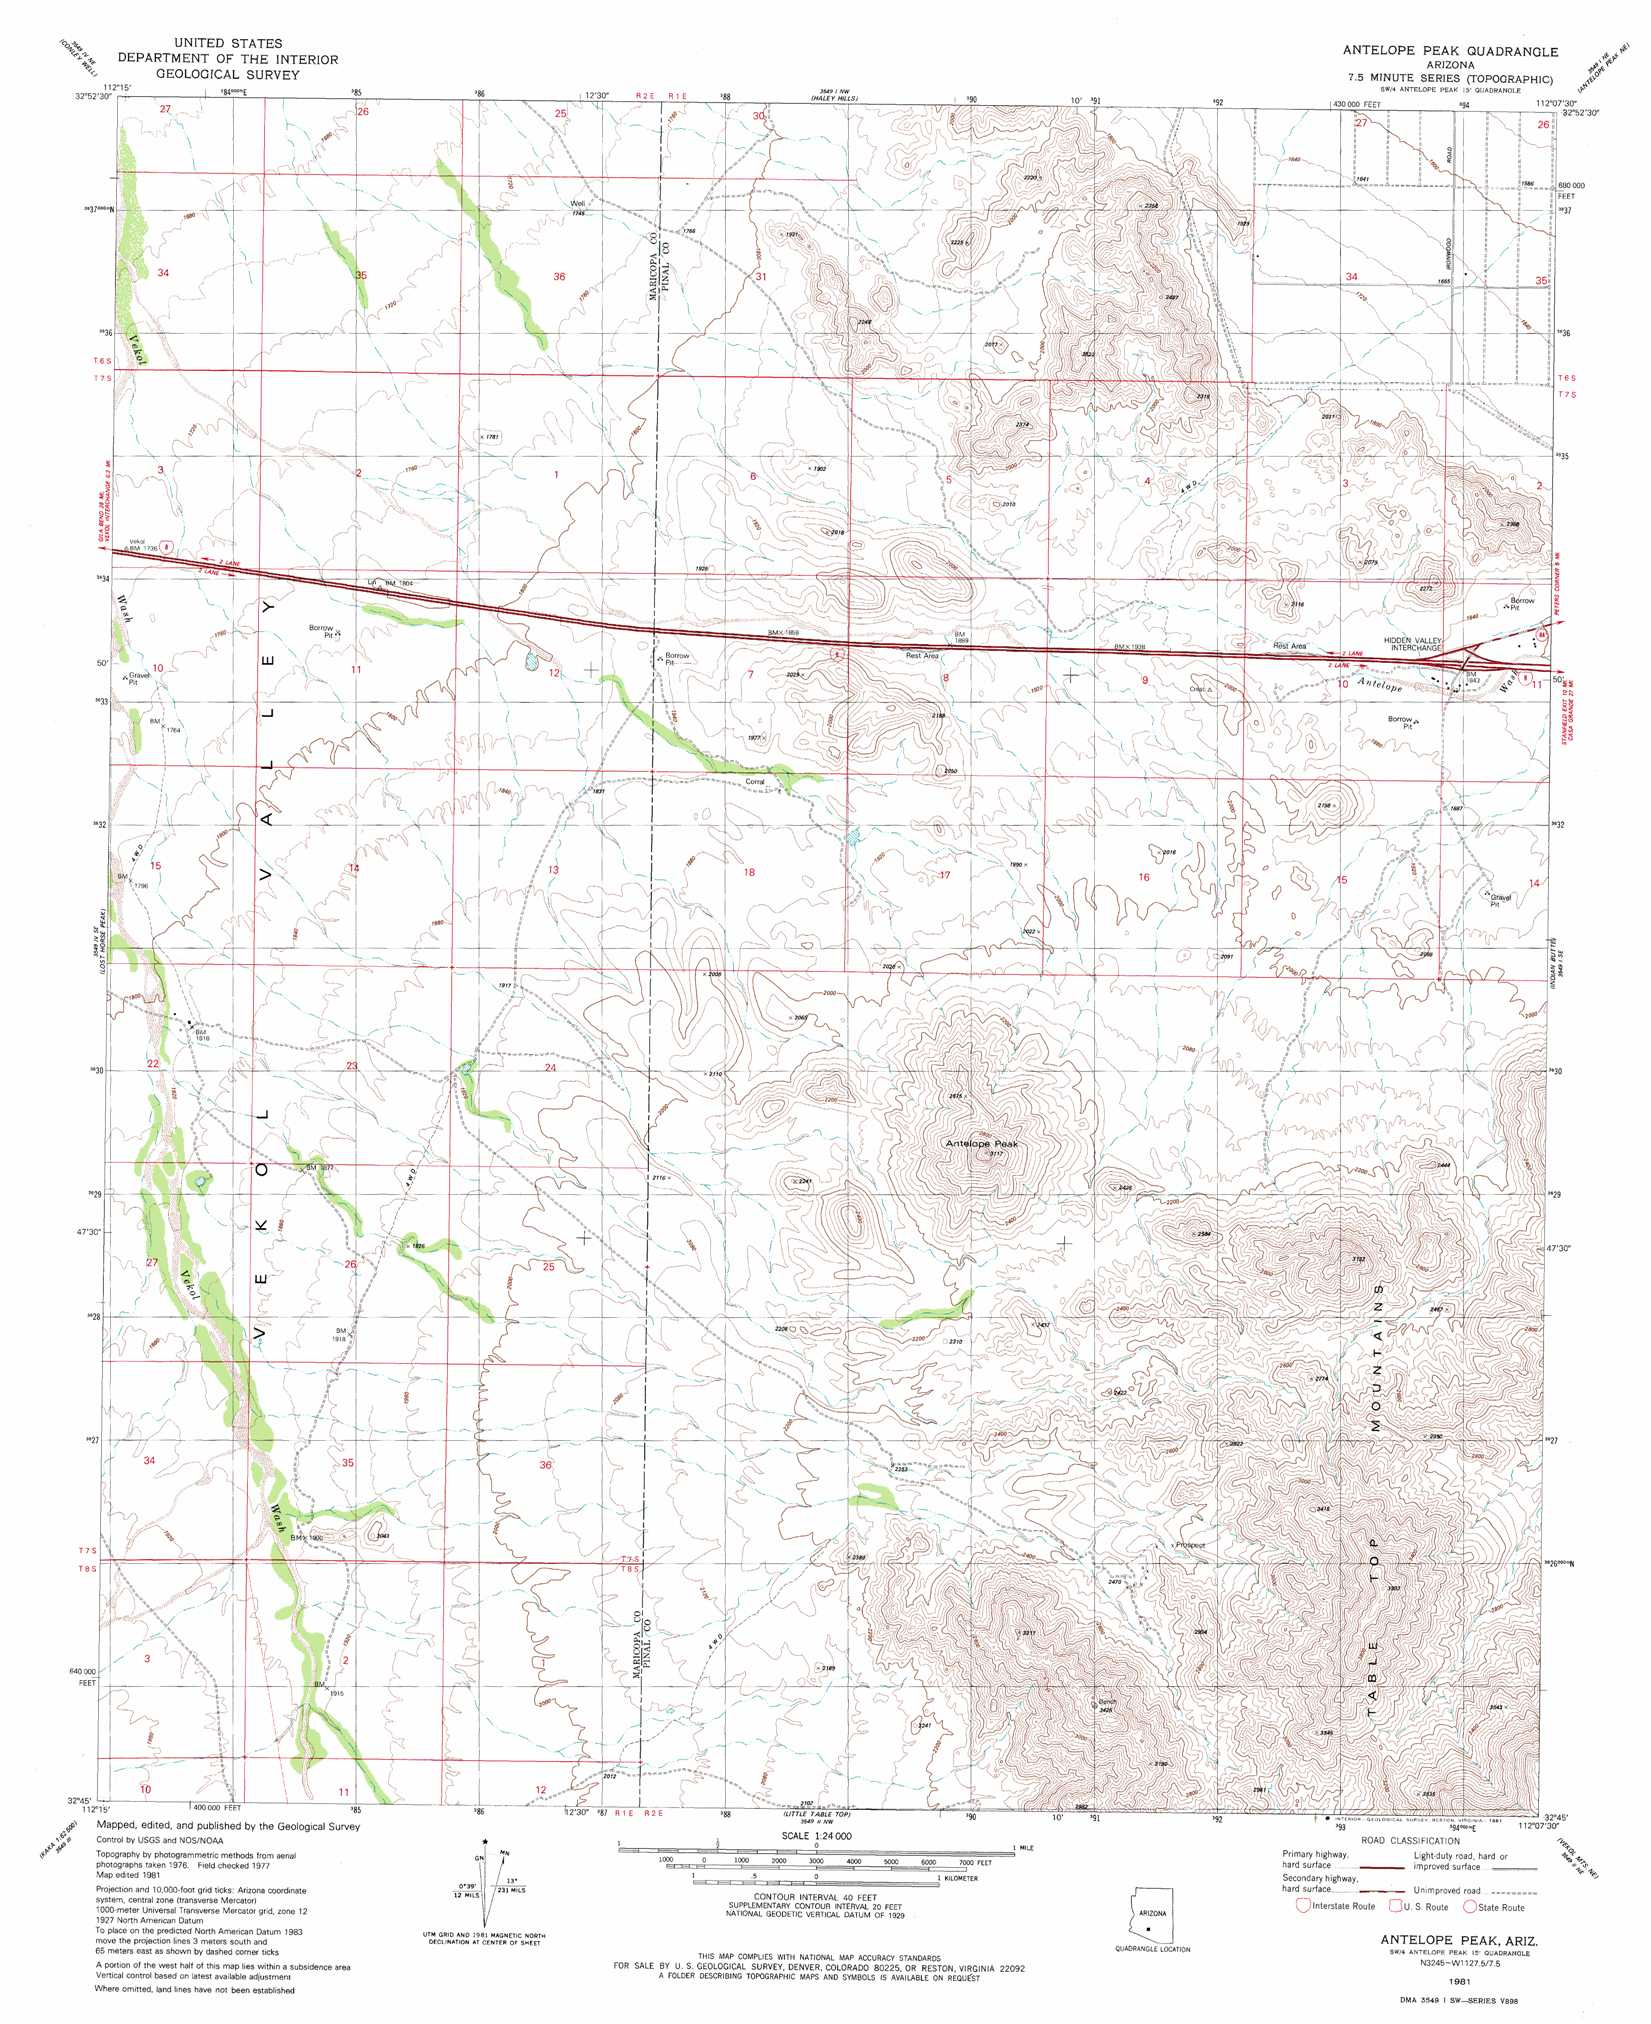 Antelope Peak Topographic Map AZ USGS Topo Quad G - Arizona topographic map